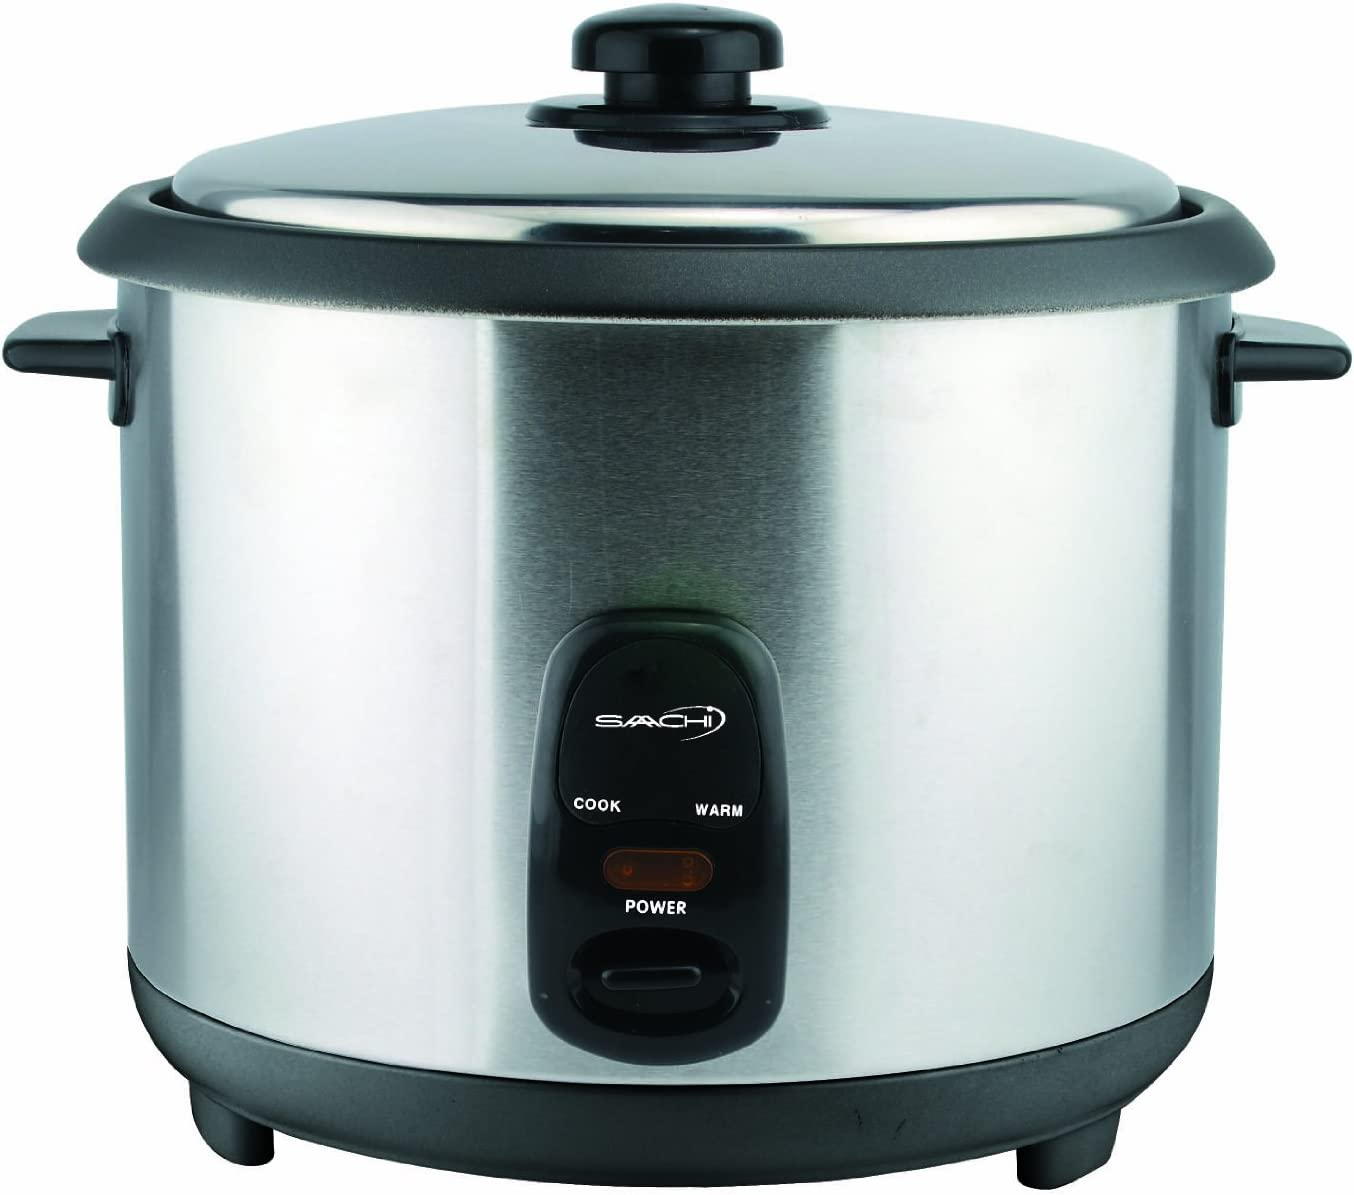 Saachi RC280 16 Cup Automatic Rice Cooker (Uncooked) with Keep Warm, Stainless Steel and Non-Stick Pot, Silver